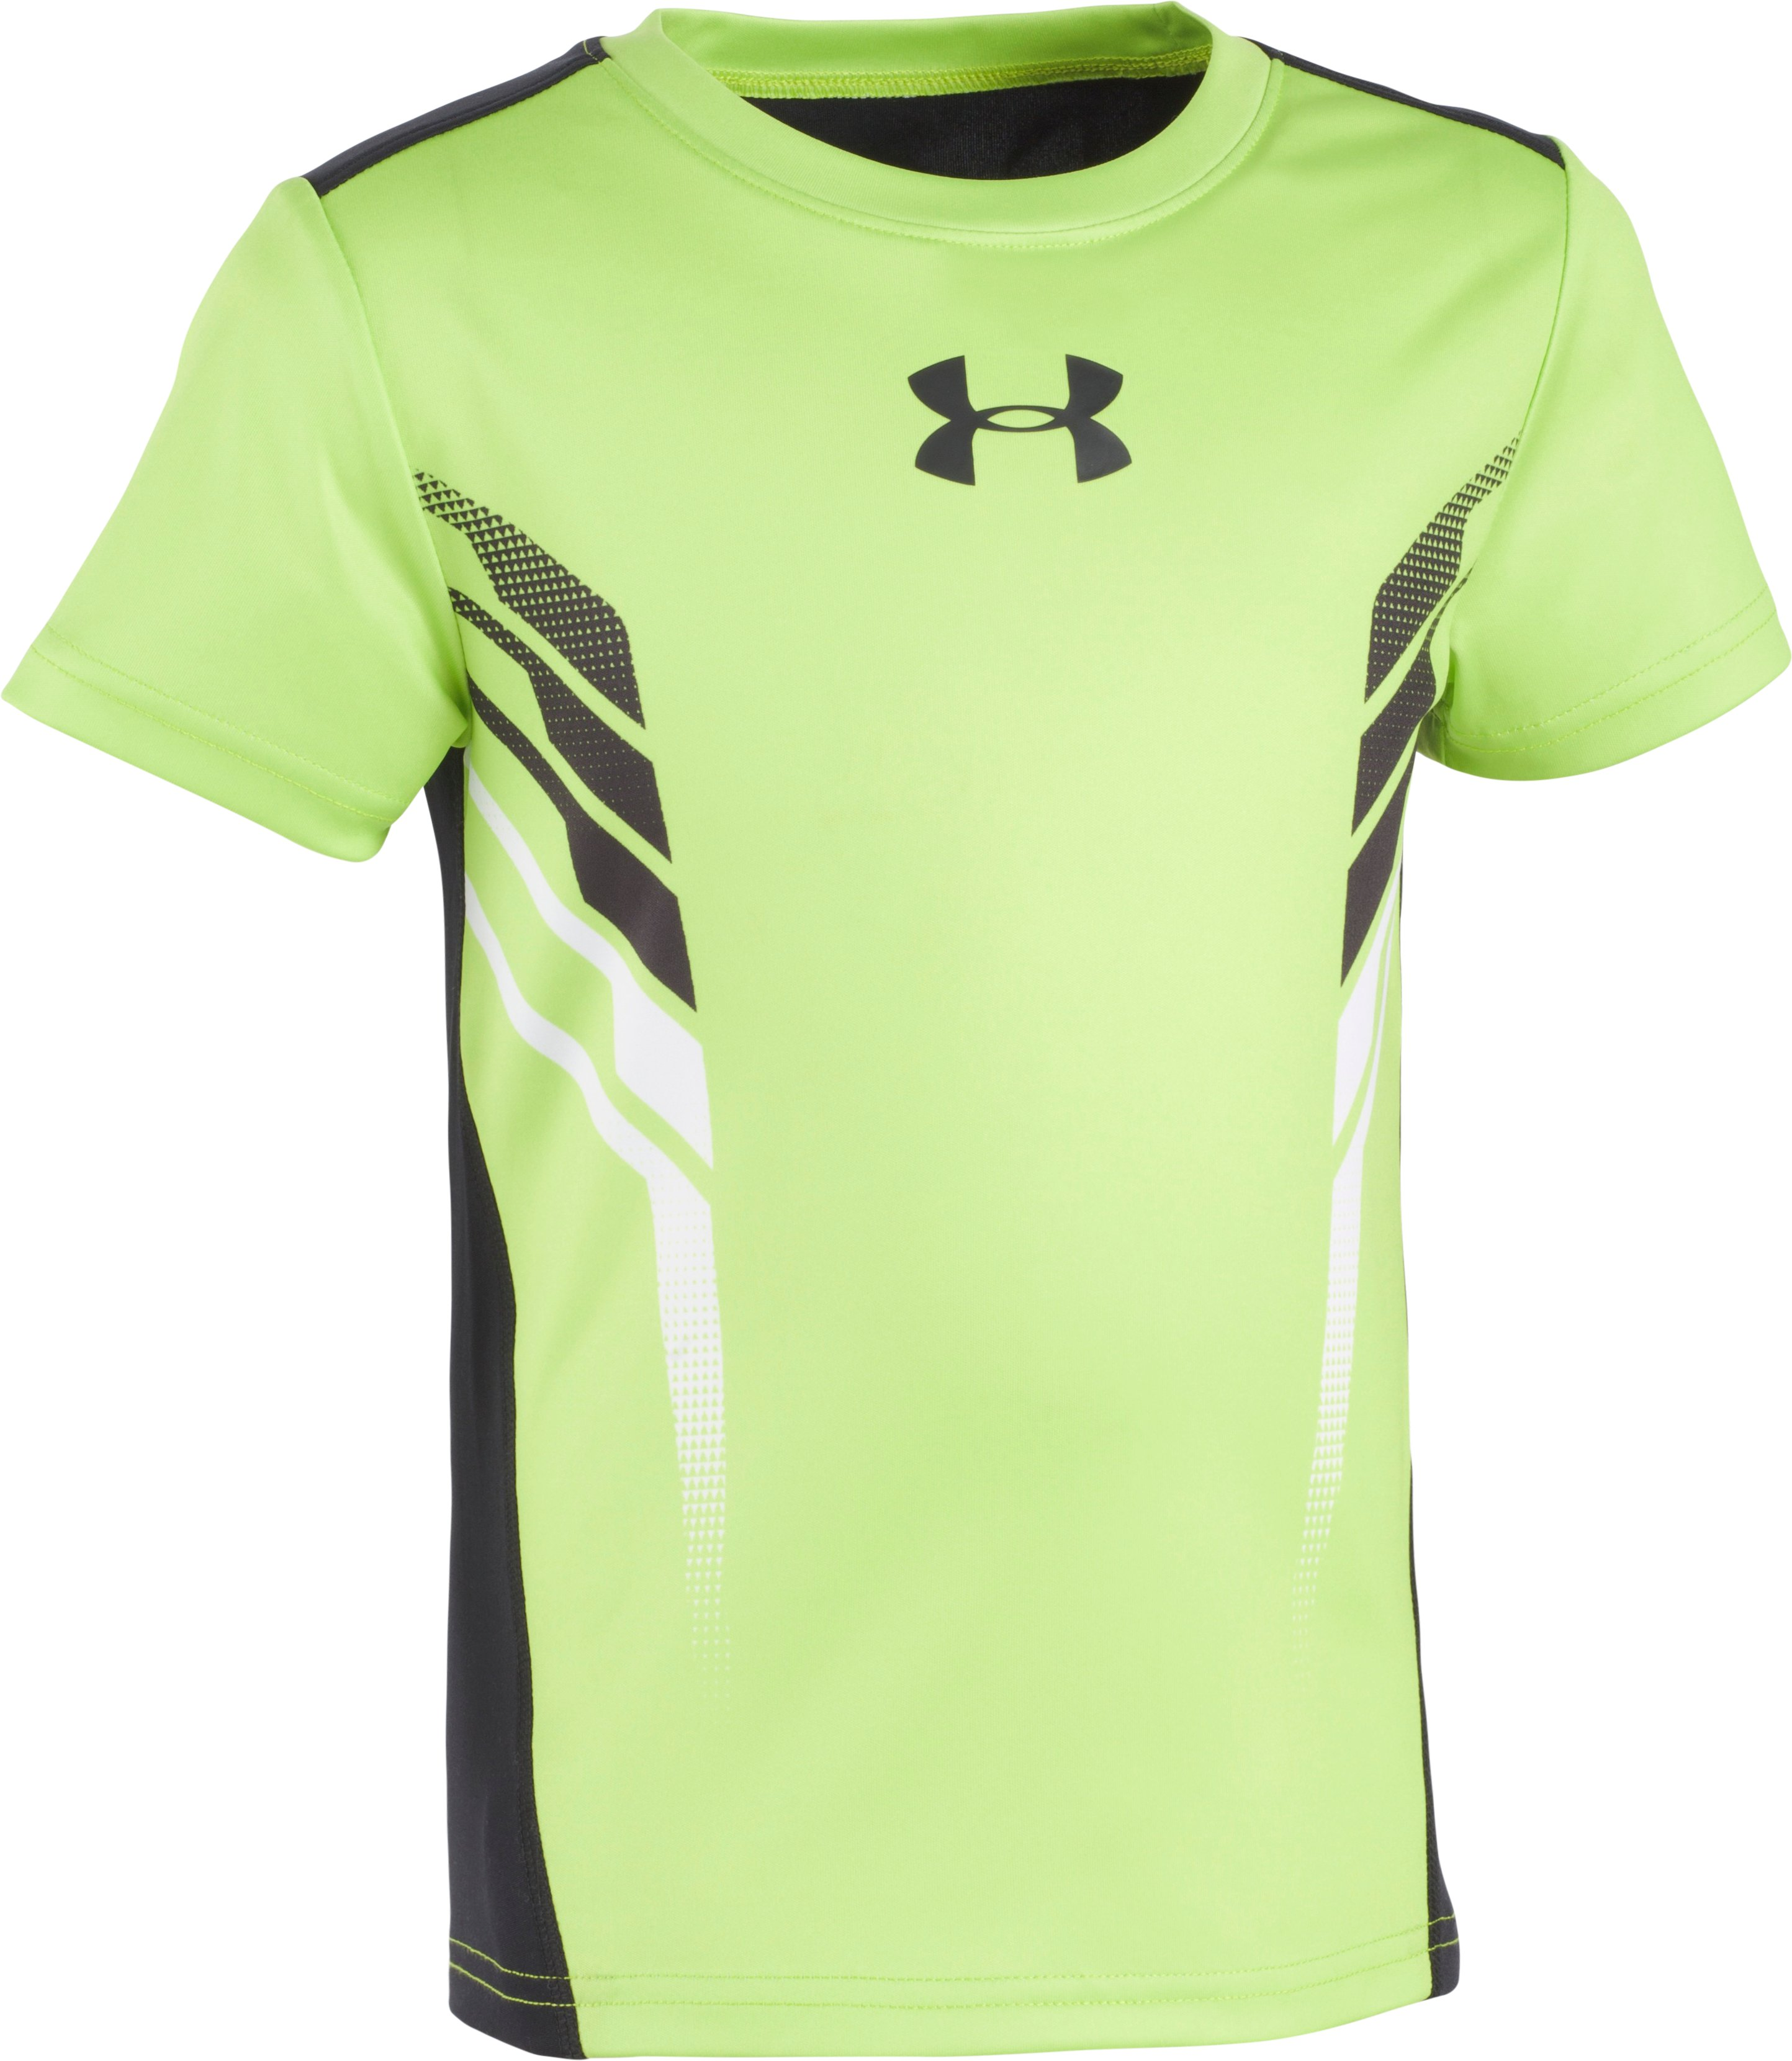 Boys' Toddler UA Select Short Sleeve T-Shirt, FUEL GREEN, Laydown